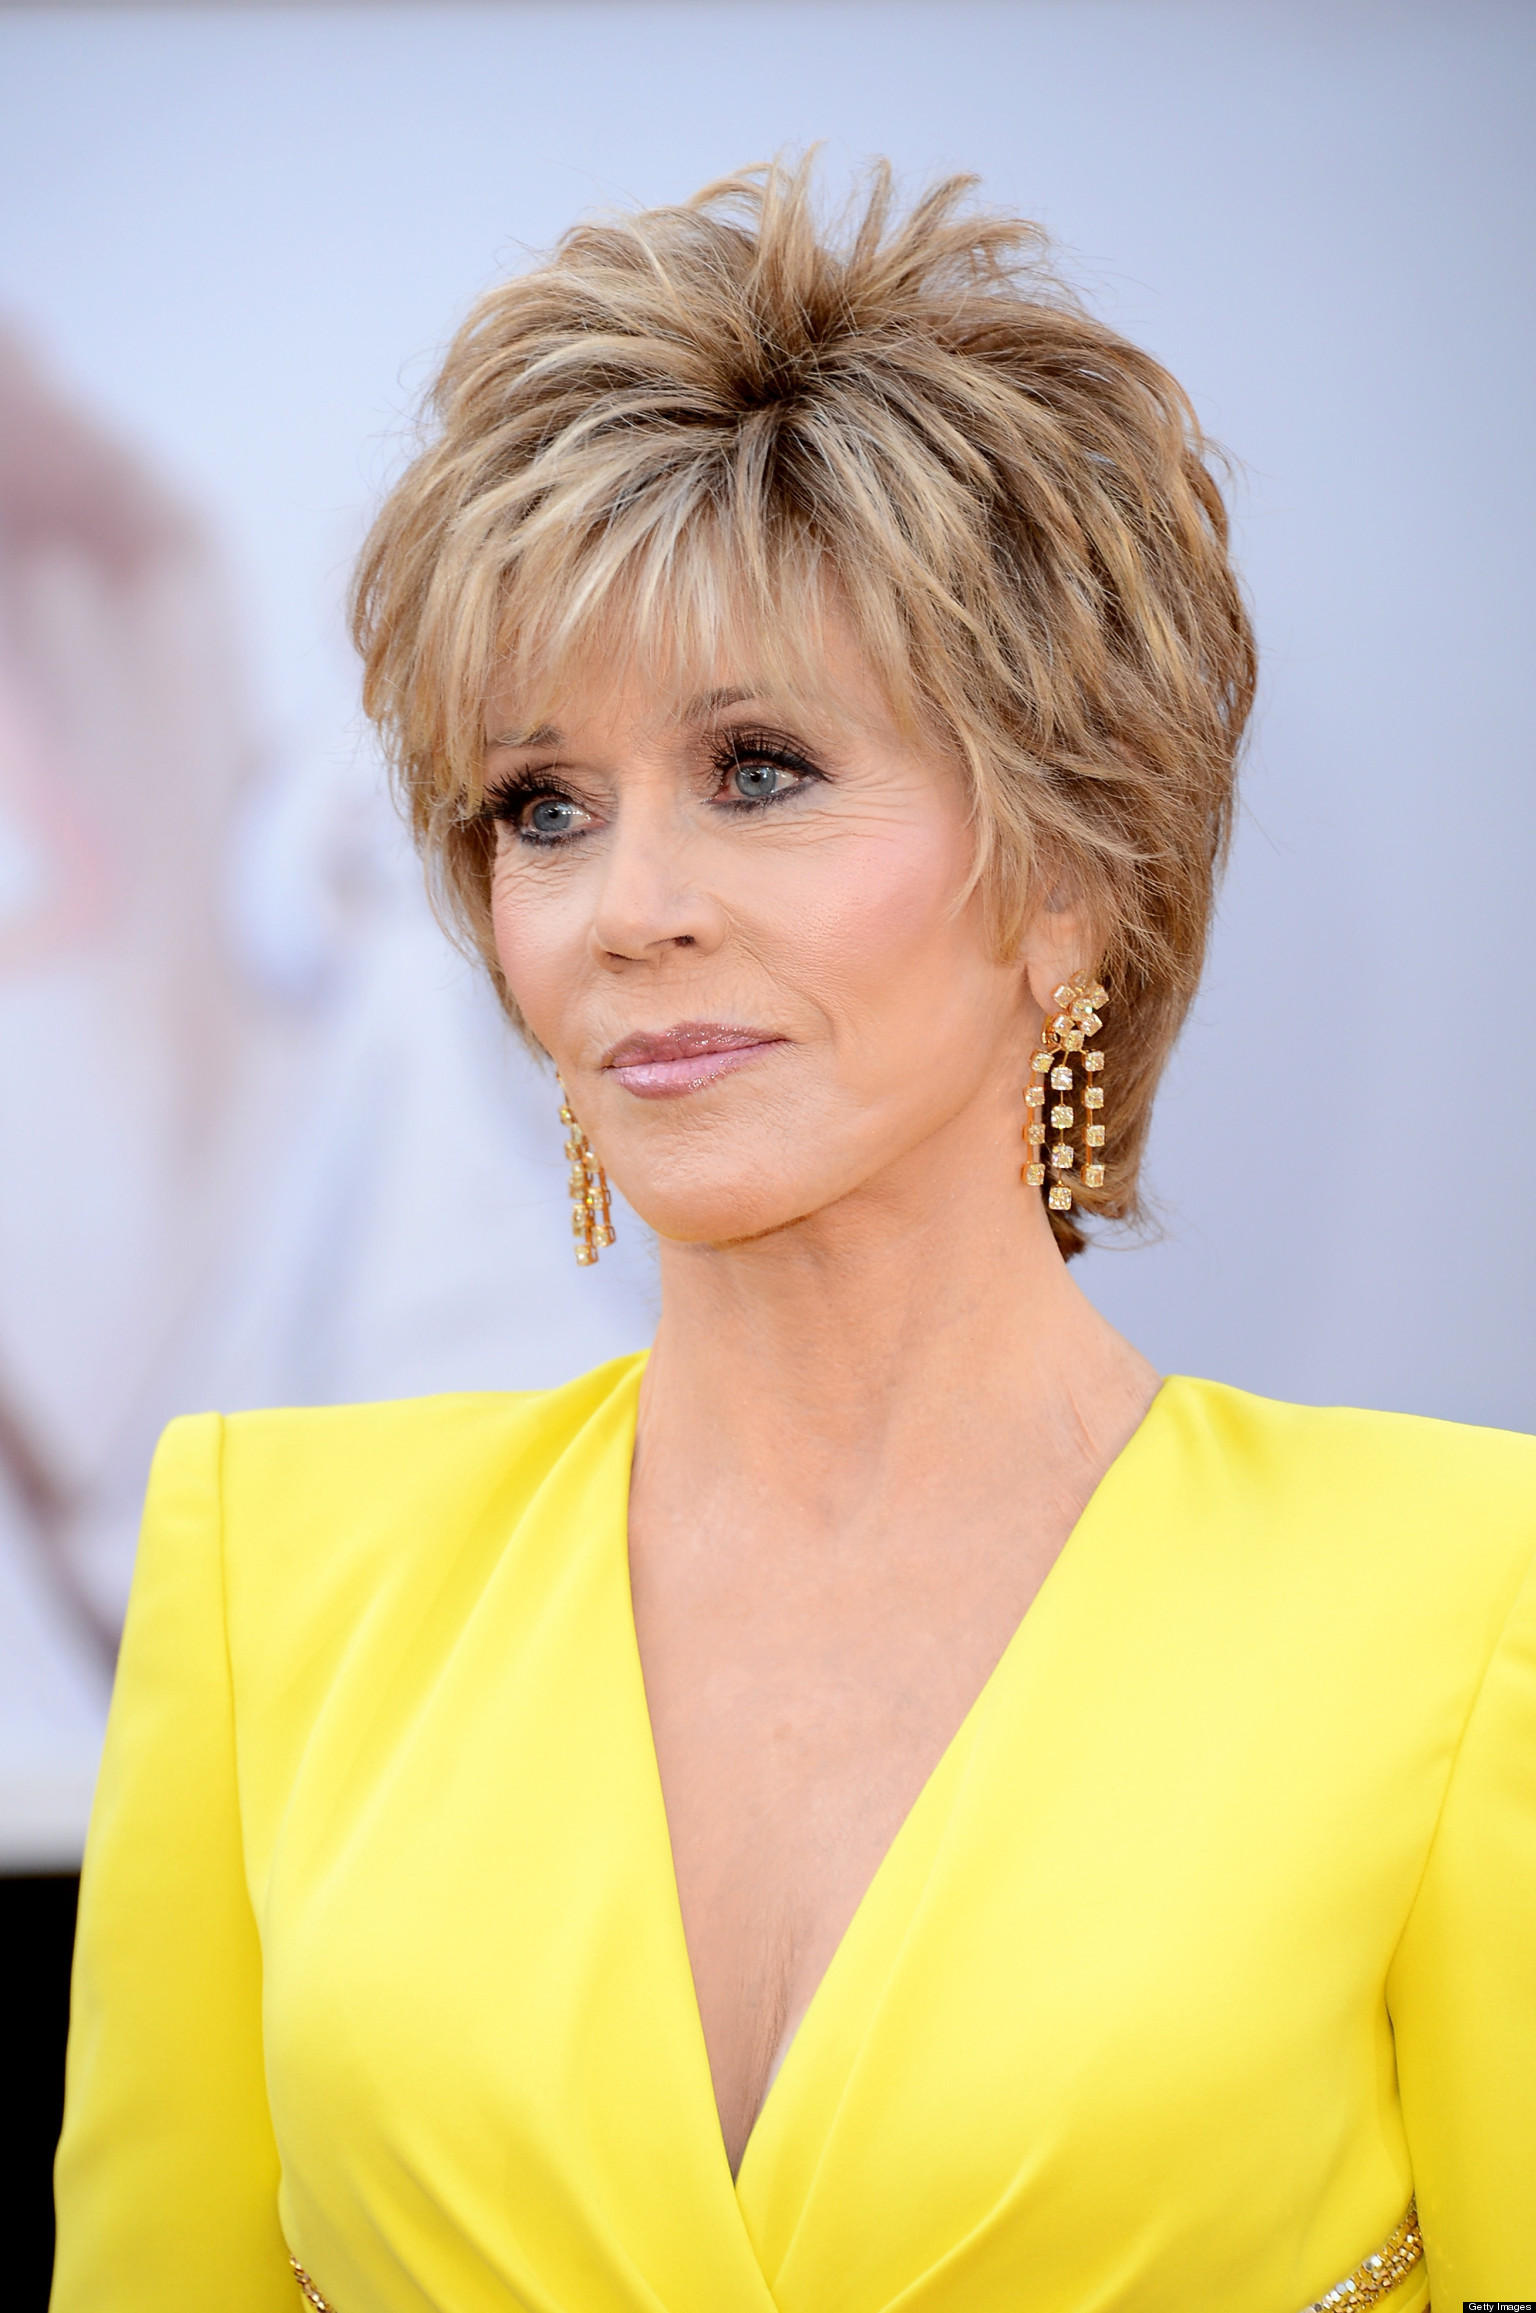 Jane Fonda Is Not Afraid To Die Actress Opens Up To Oprah